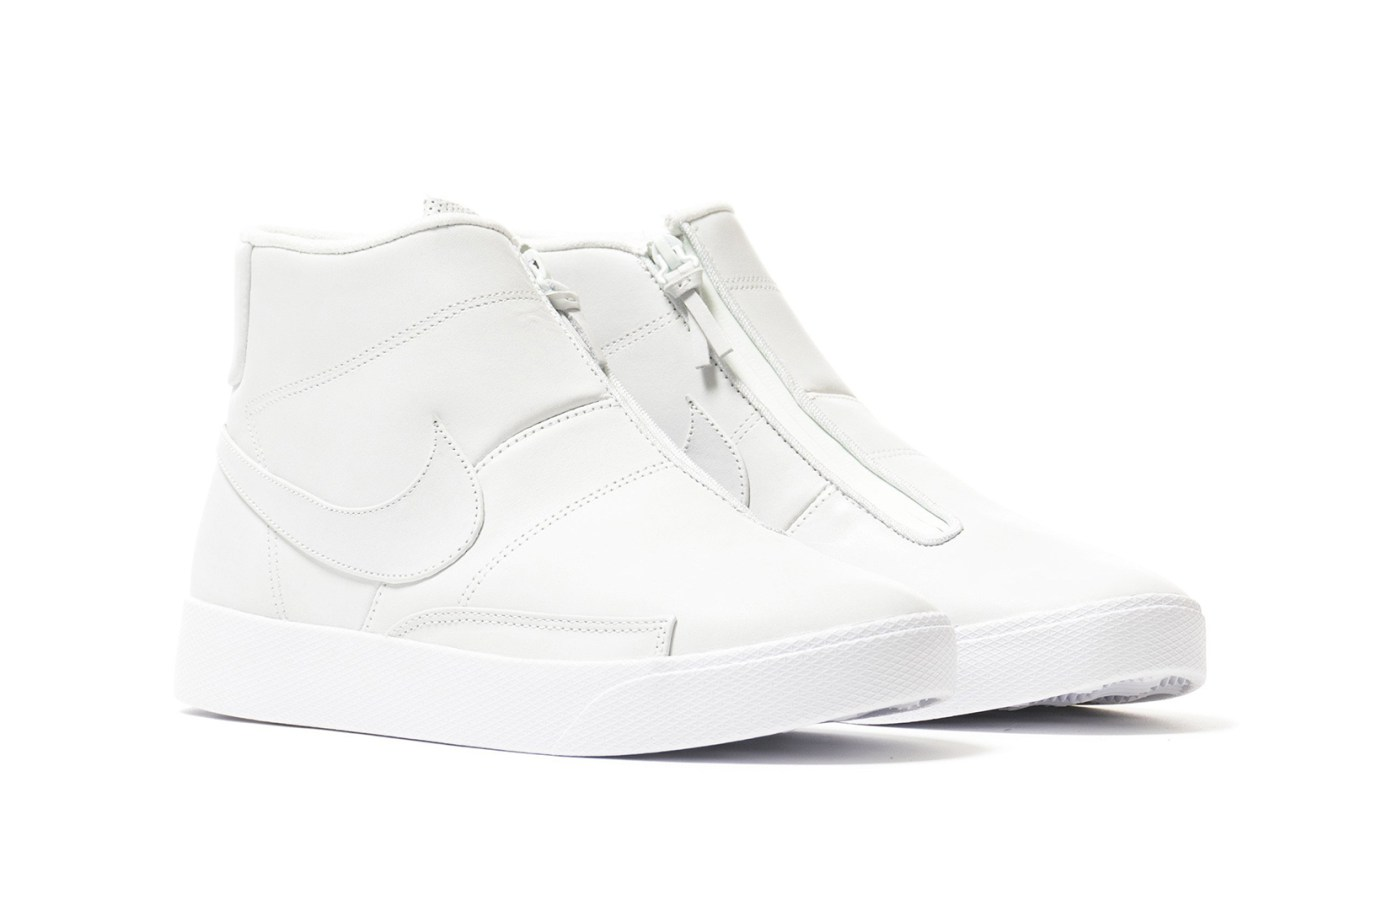 nikelab-blazer-advanced-white-sneaker-3